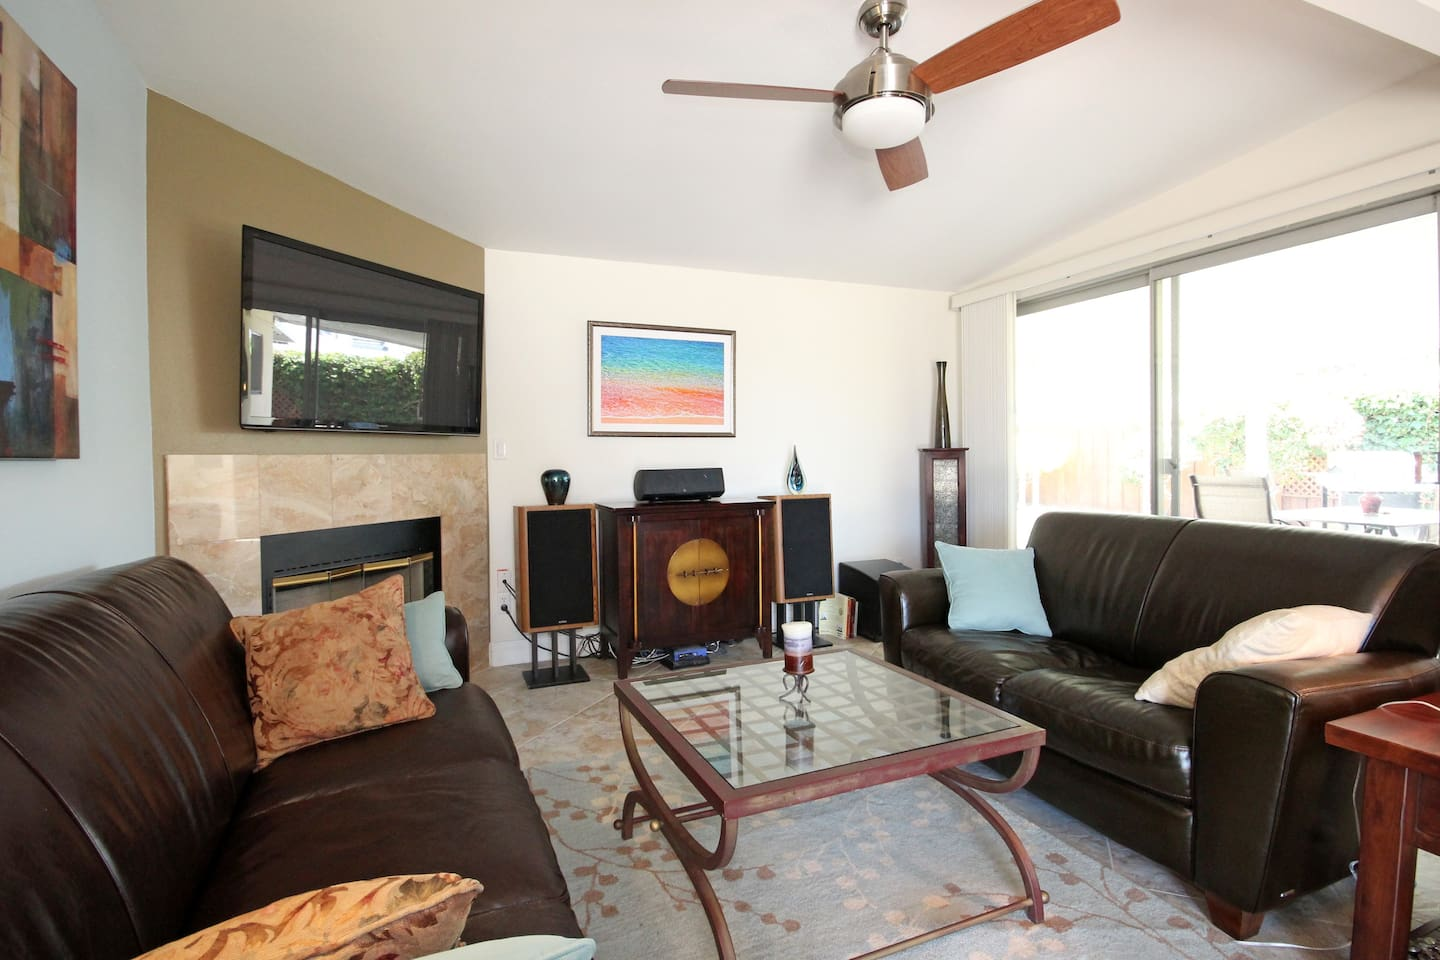 HDTV, wireless i-net, stereo.   Entire home recently remodeled.